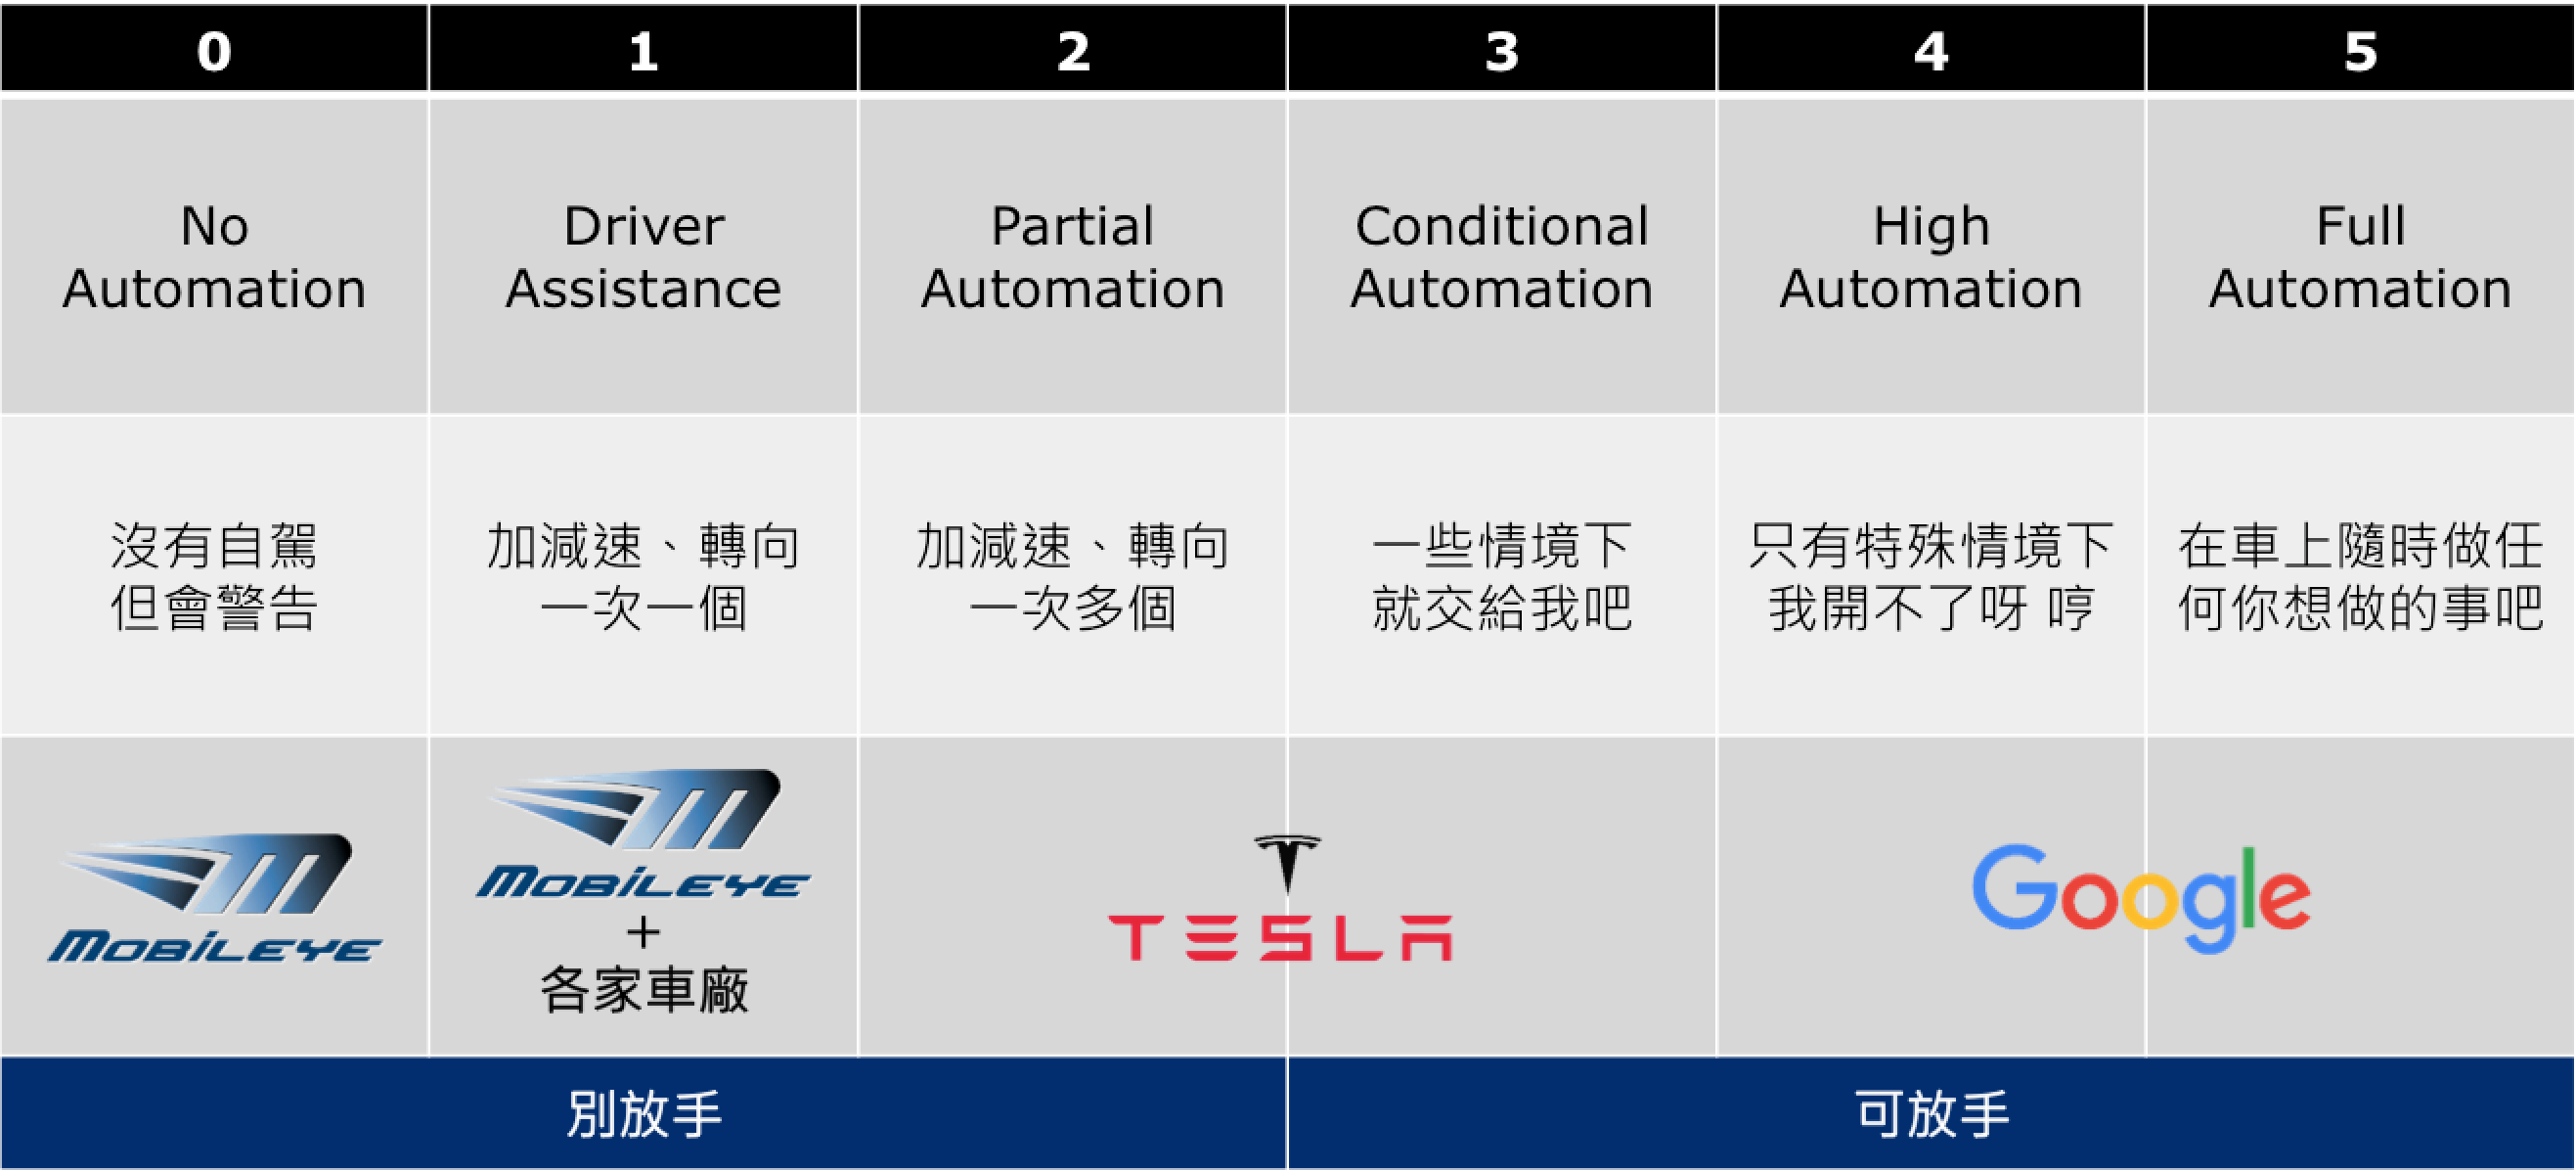 SAE Self-Driving Car Levels in Chinese